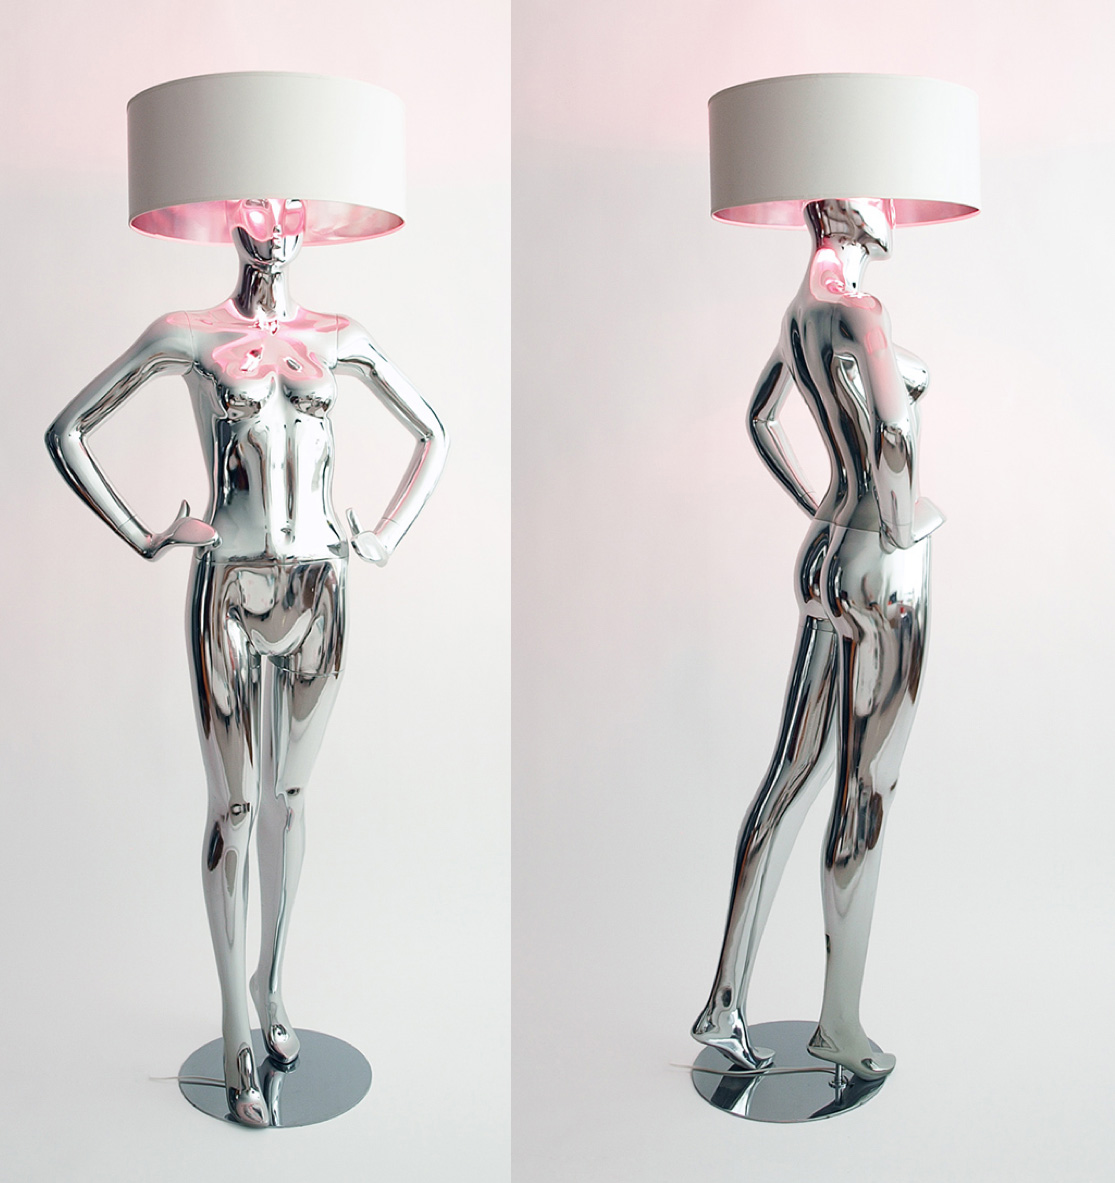 Lightbodies By Kilu Limited Edition Lamps With Male And